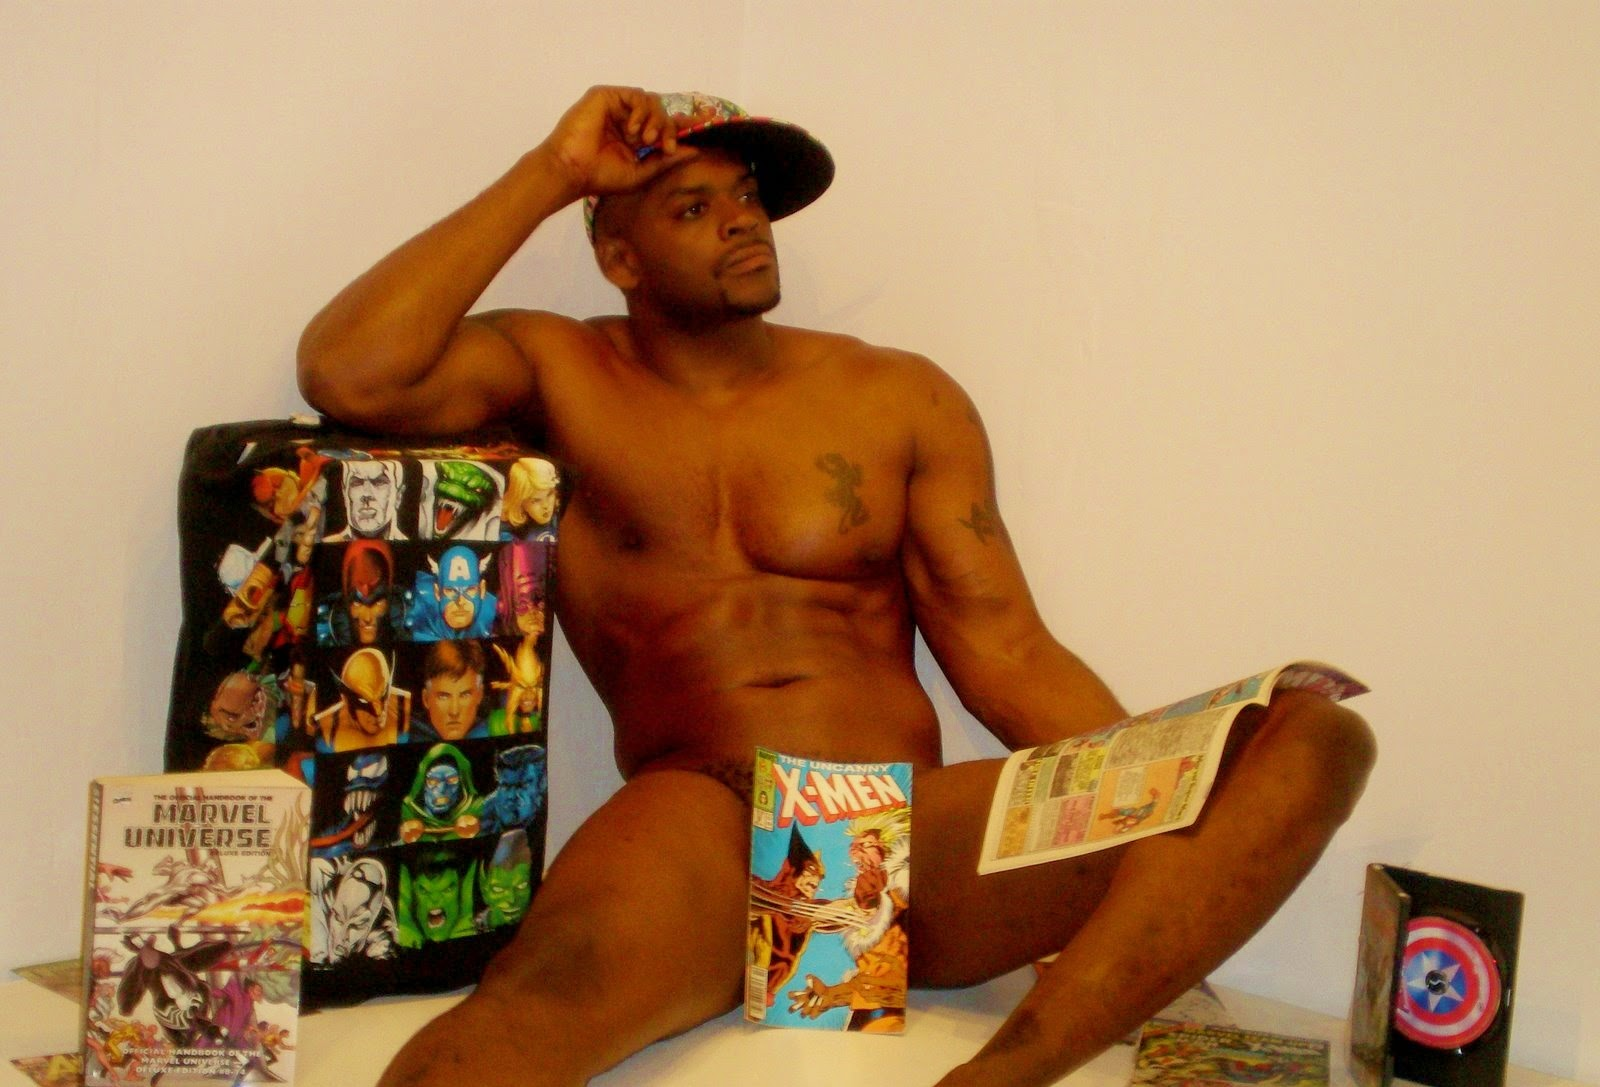 A ComicBook Geek?